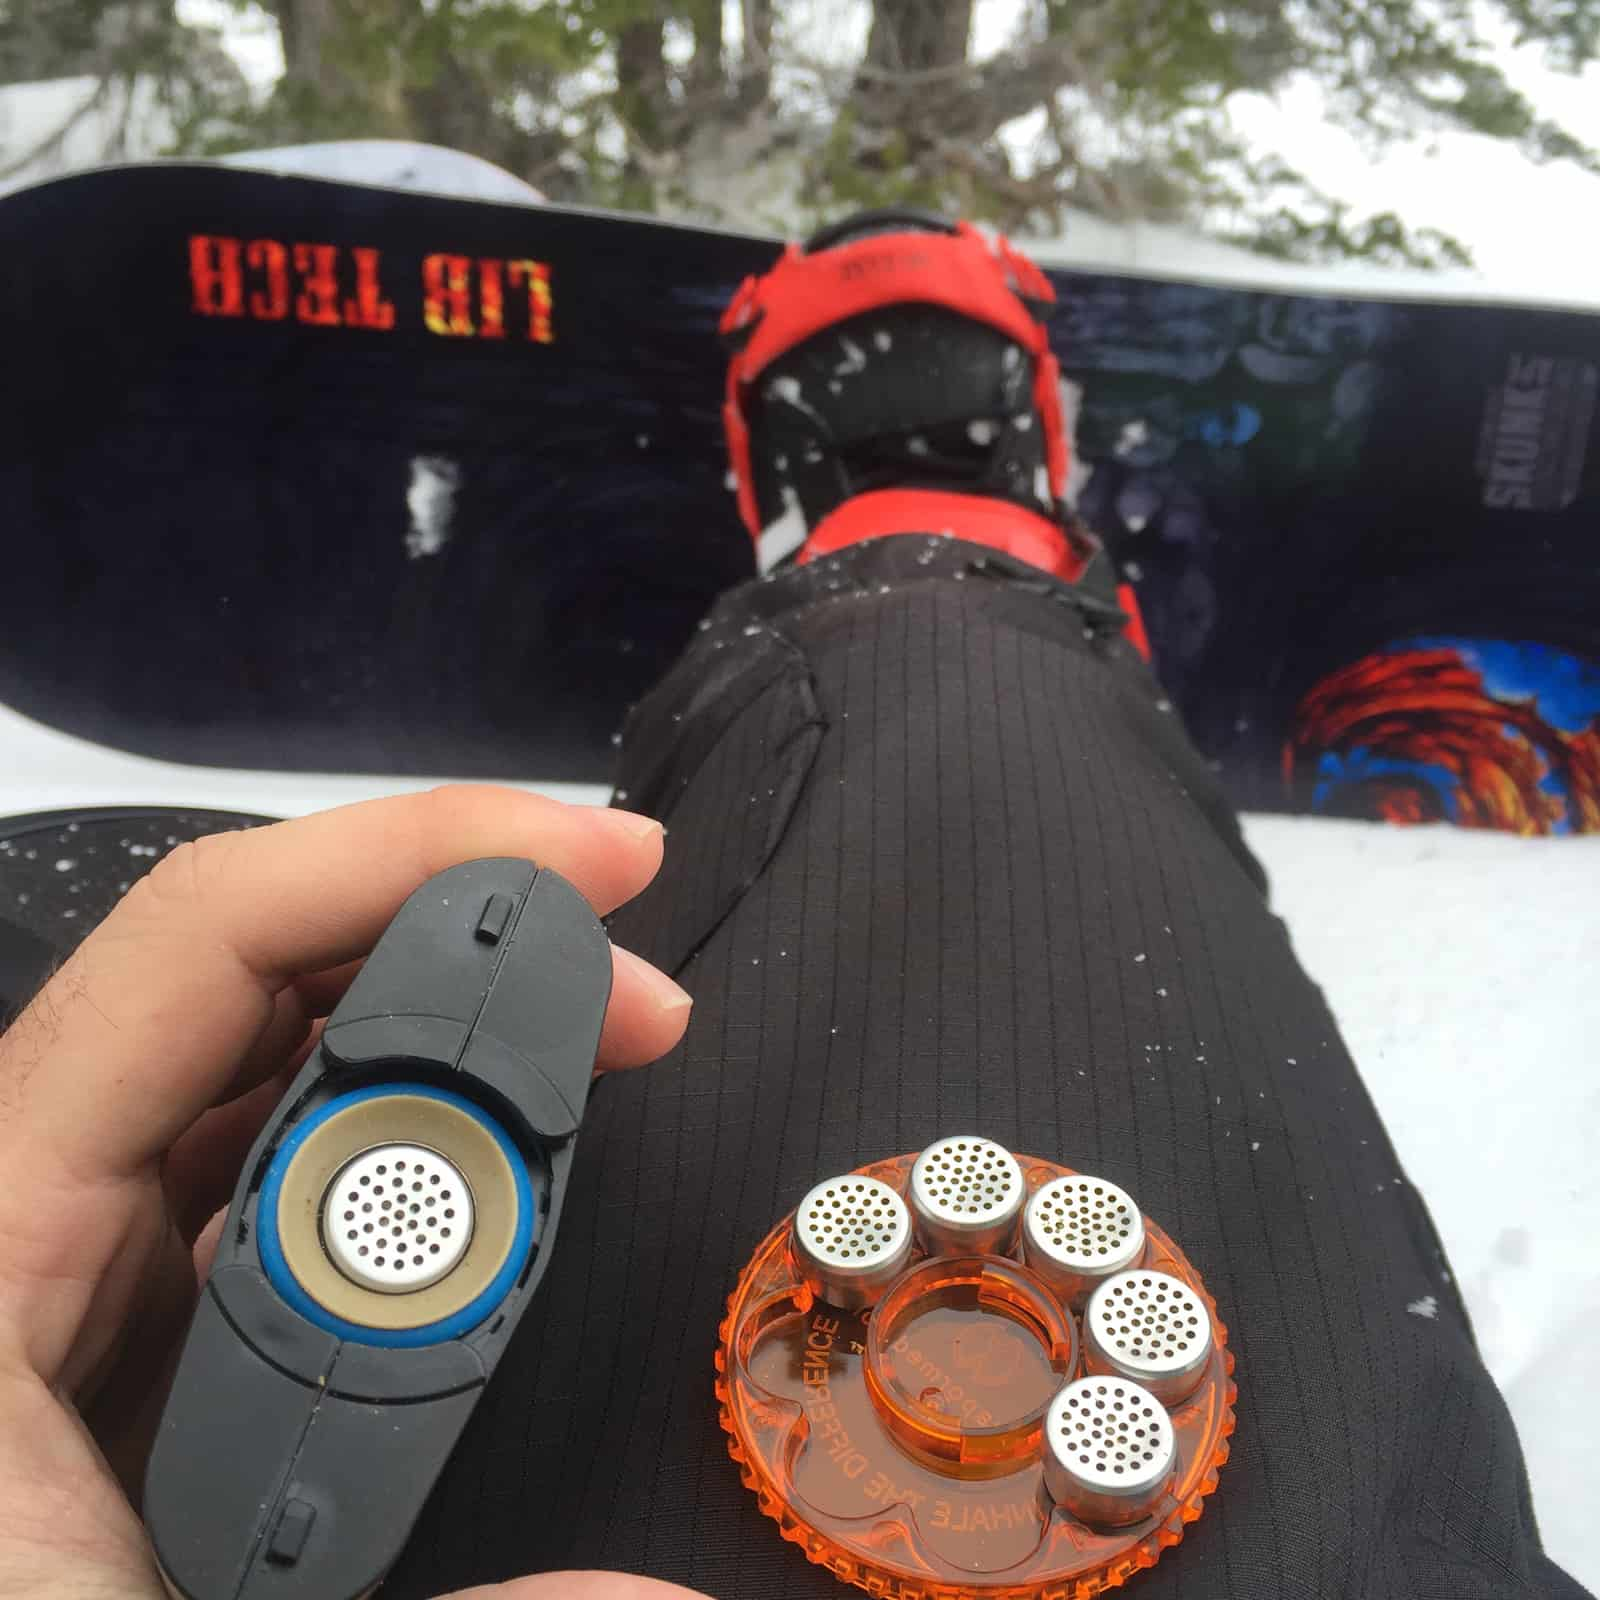 Are Mighty Dosing Capsules Good For Snowboarding?